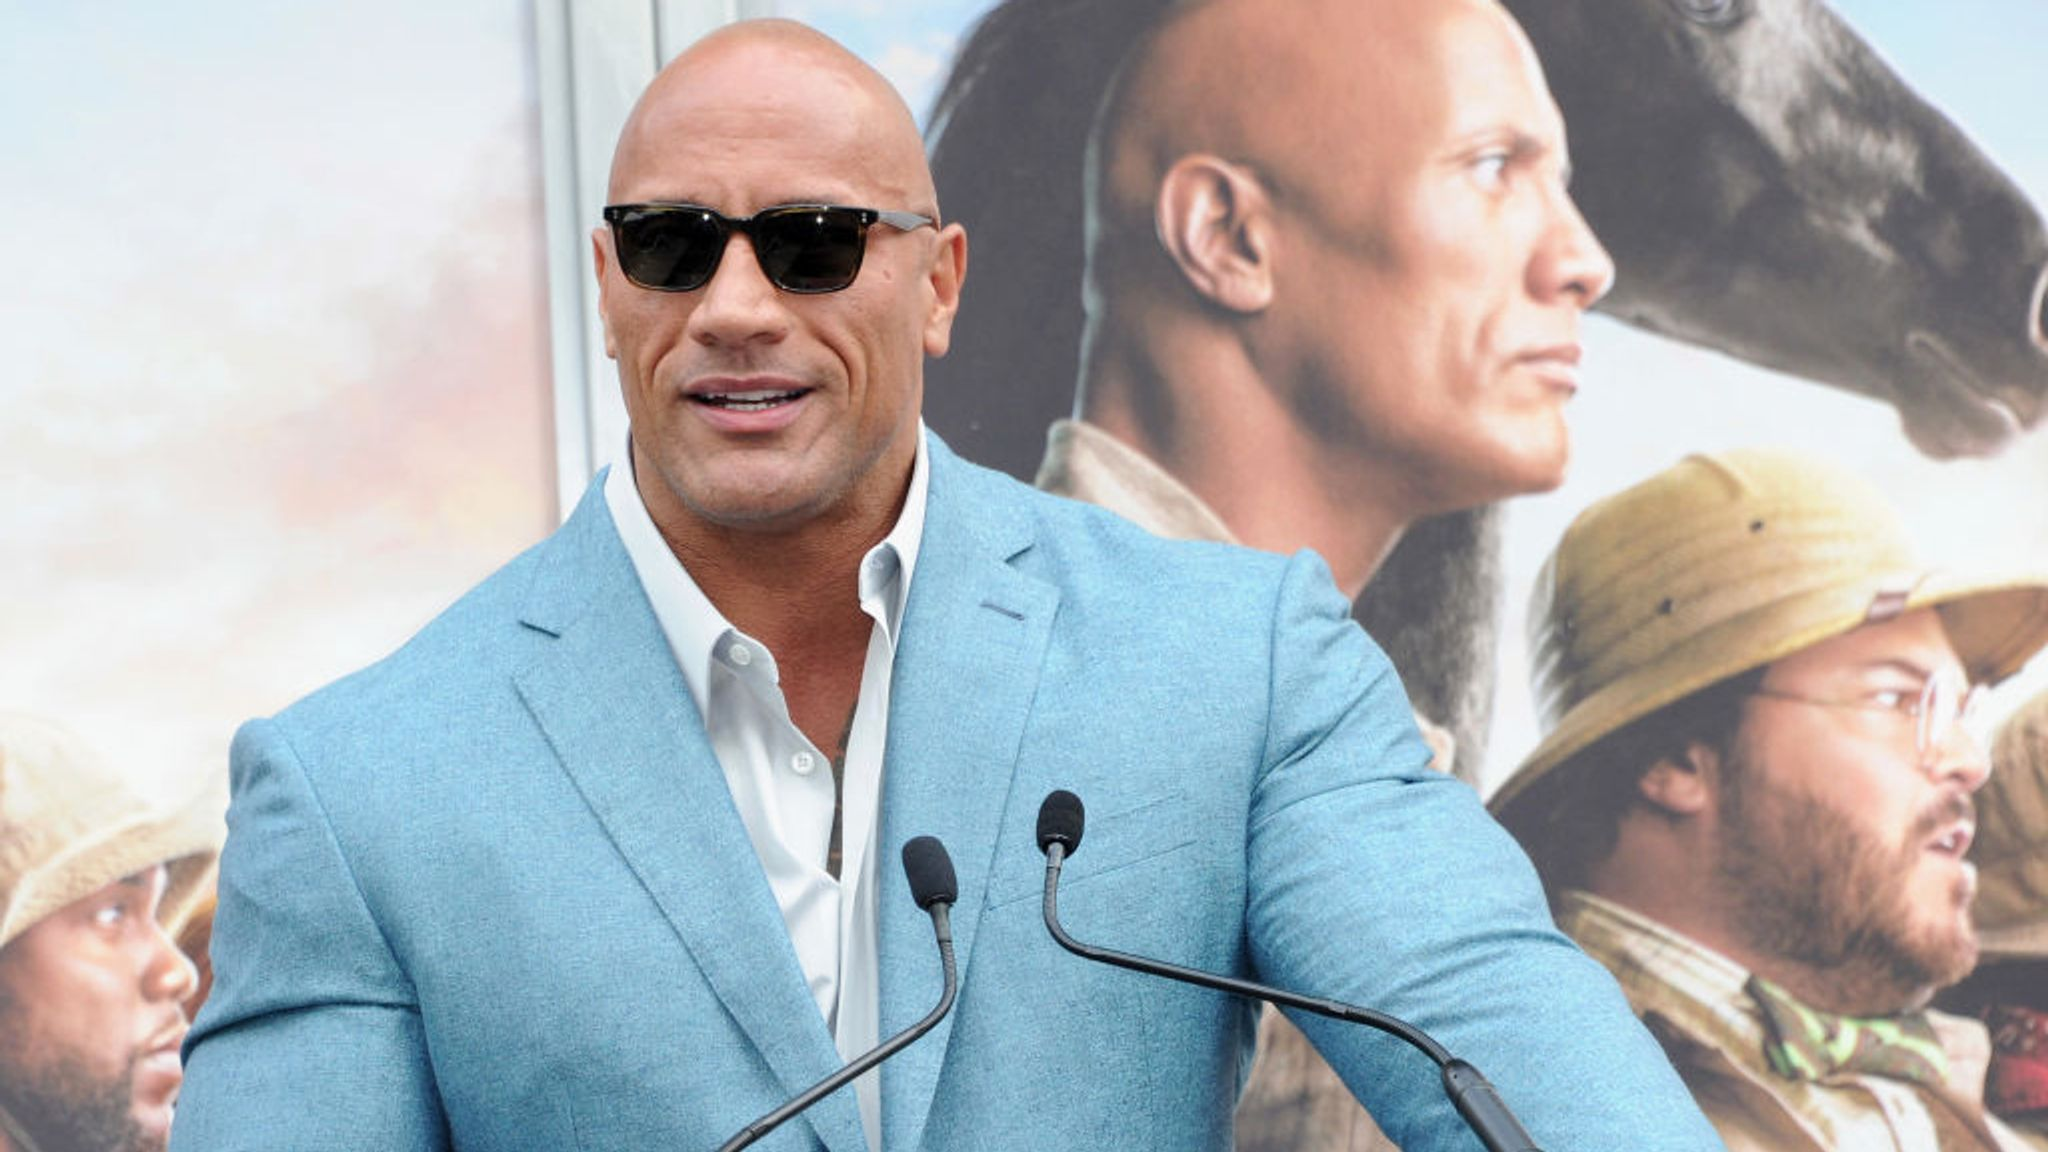 Dwayne Johnson is the highest paid actor in the world